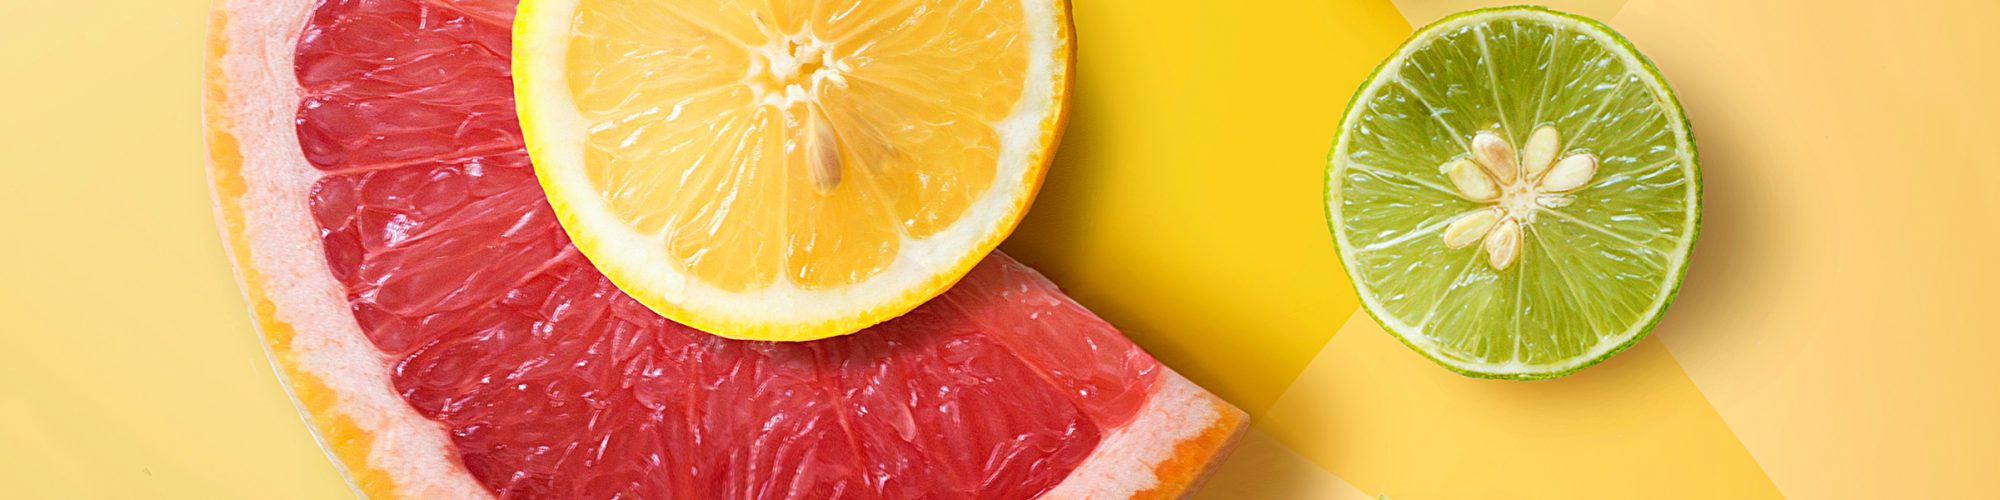 Flat lay assorted citrus fruits on graphical design background. Decorative design background.